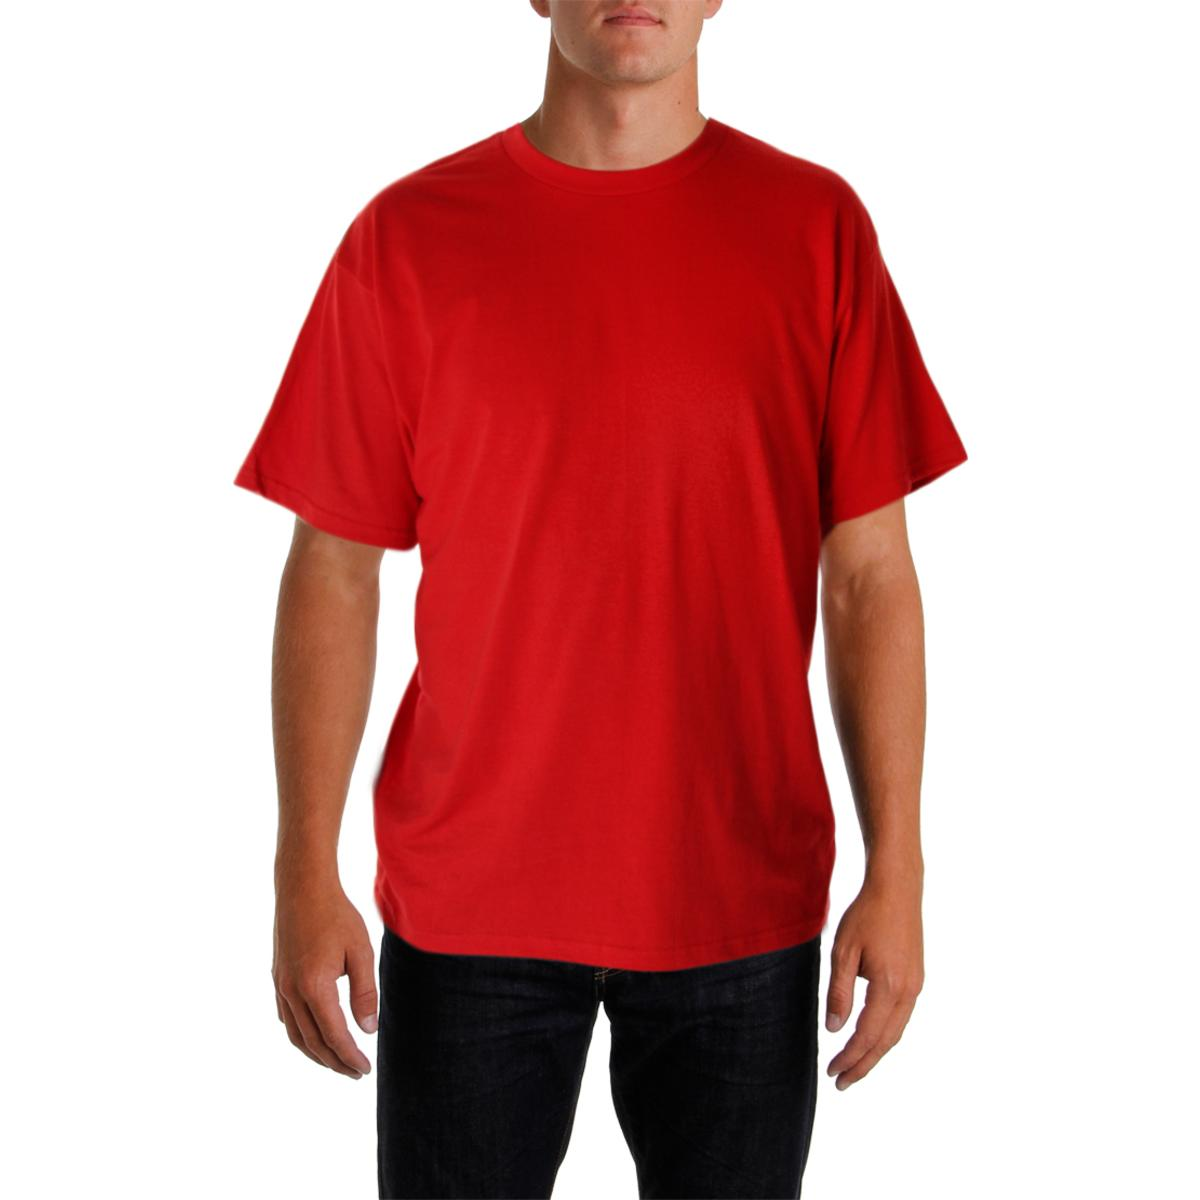 2b2a326de3fe Details about Nike Mens Red Cotton Short Sleeves T-Shirt Athletic L BHFO  1010